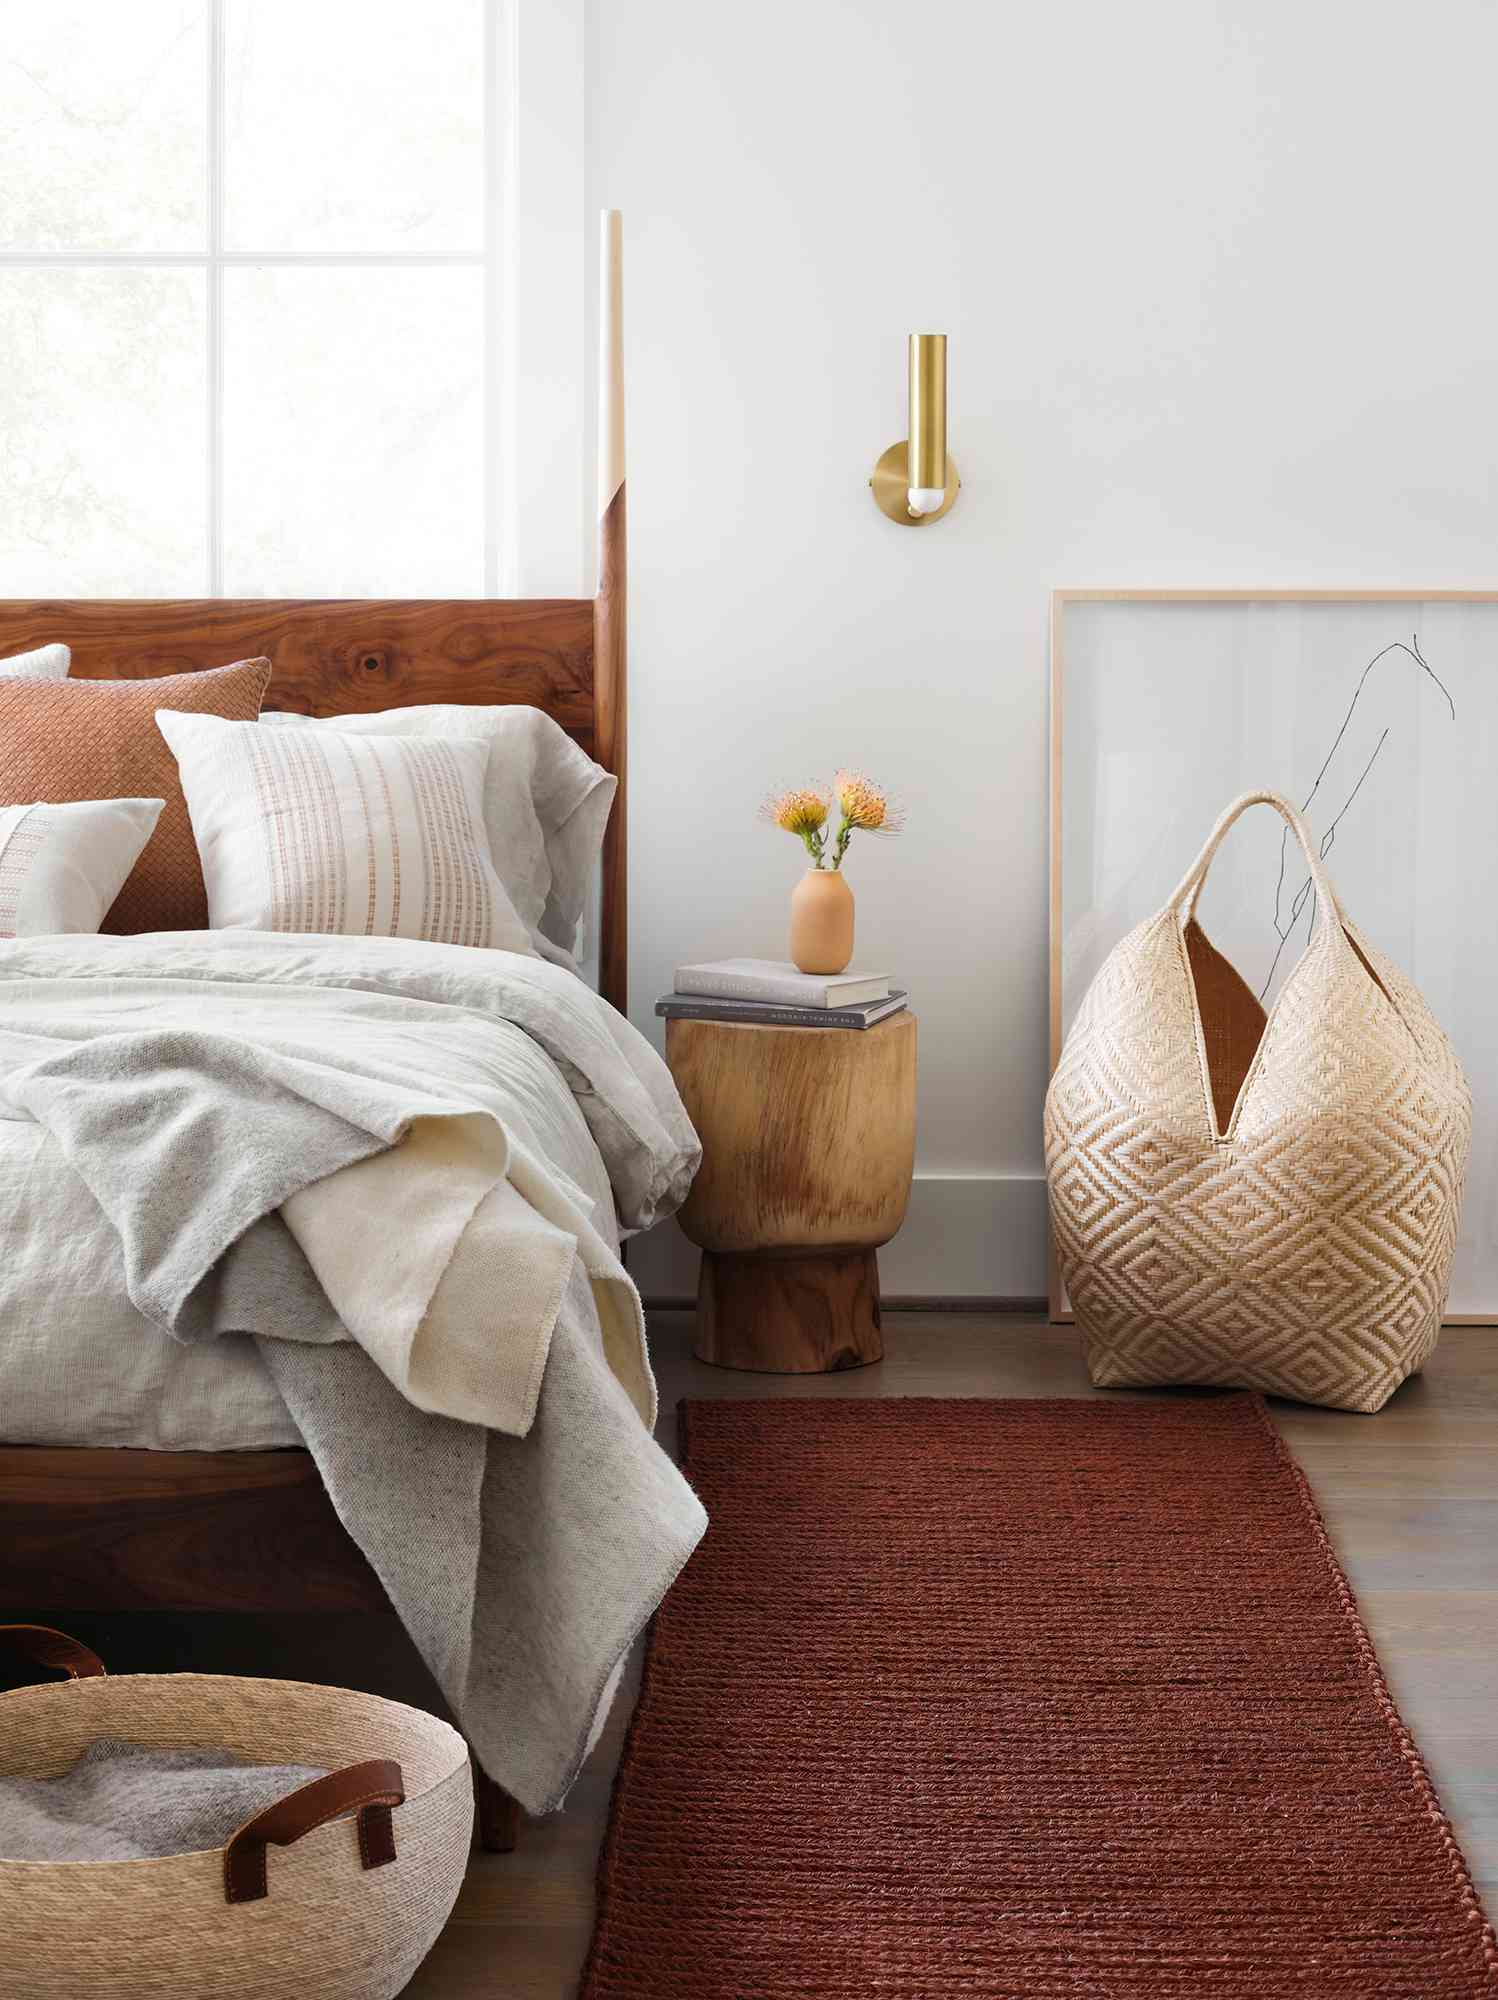 bedroom with wooden bedframe and woven accents